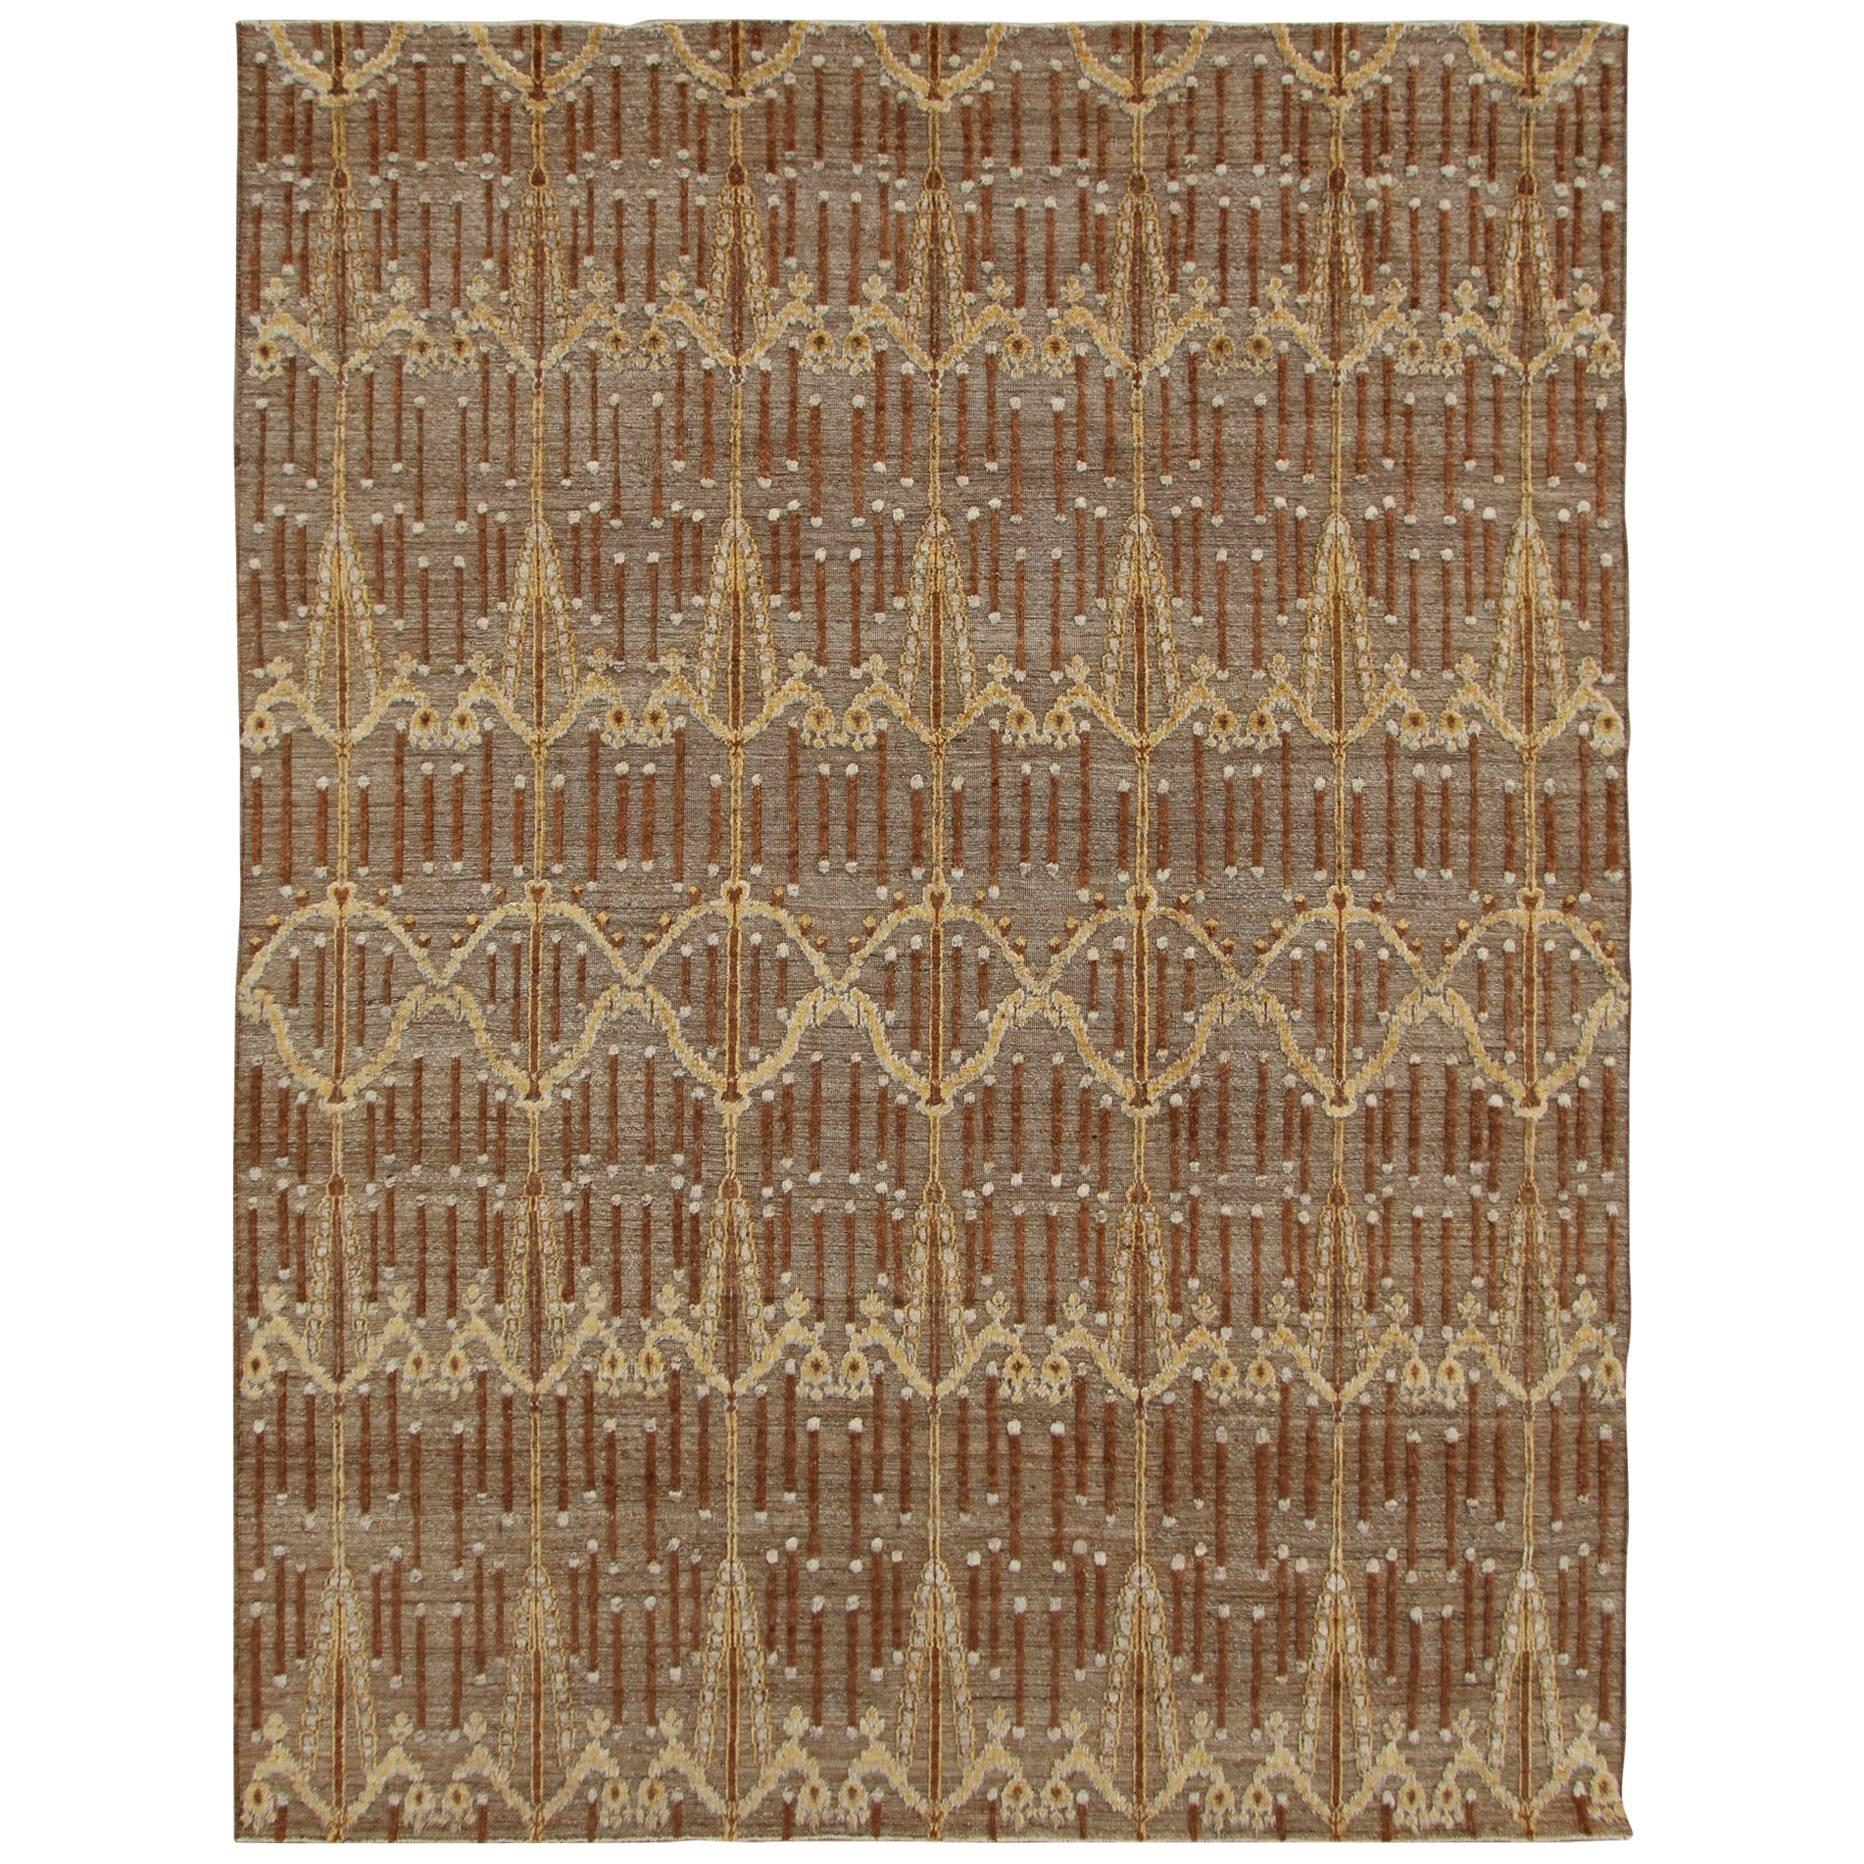 Dupre Chestnut and Cream Hand-Knotted Tufted Wool Rug